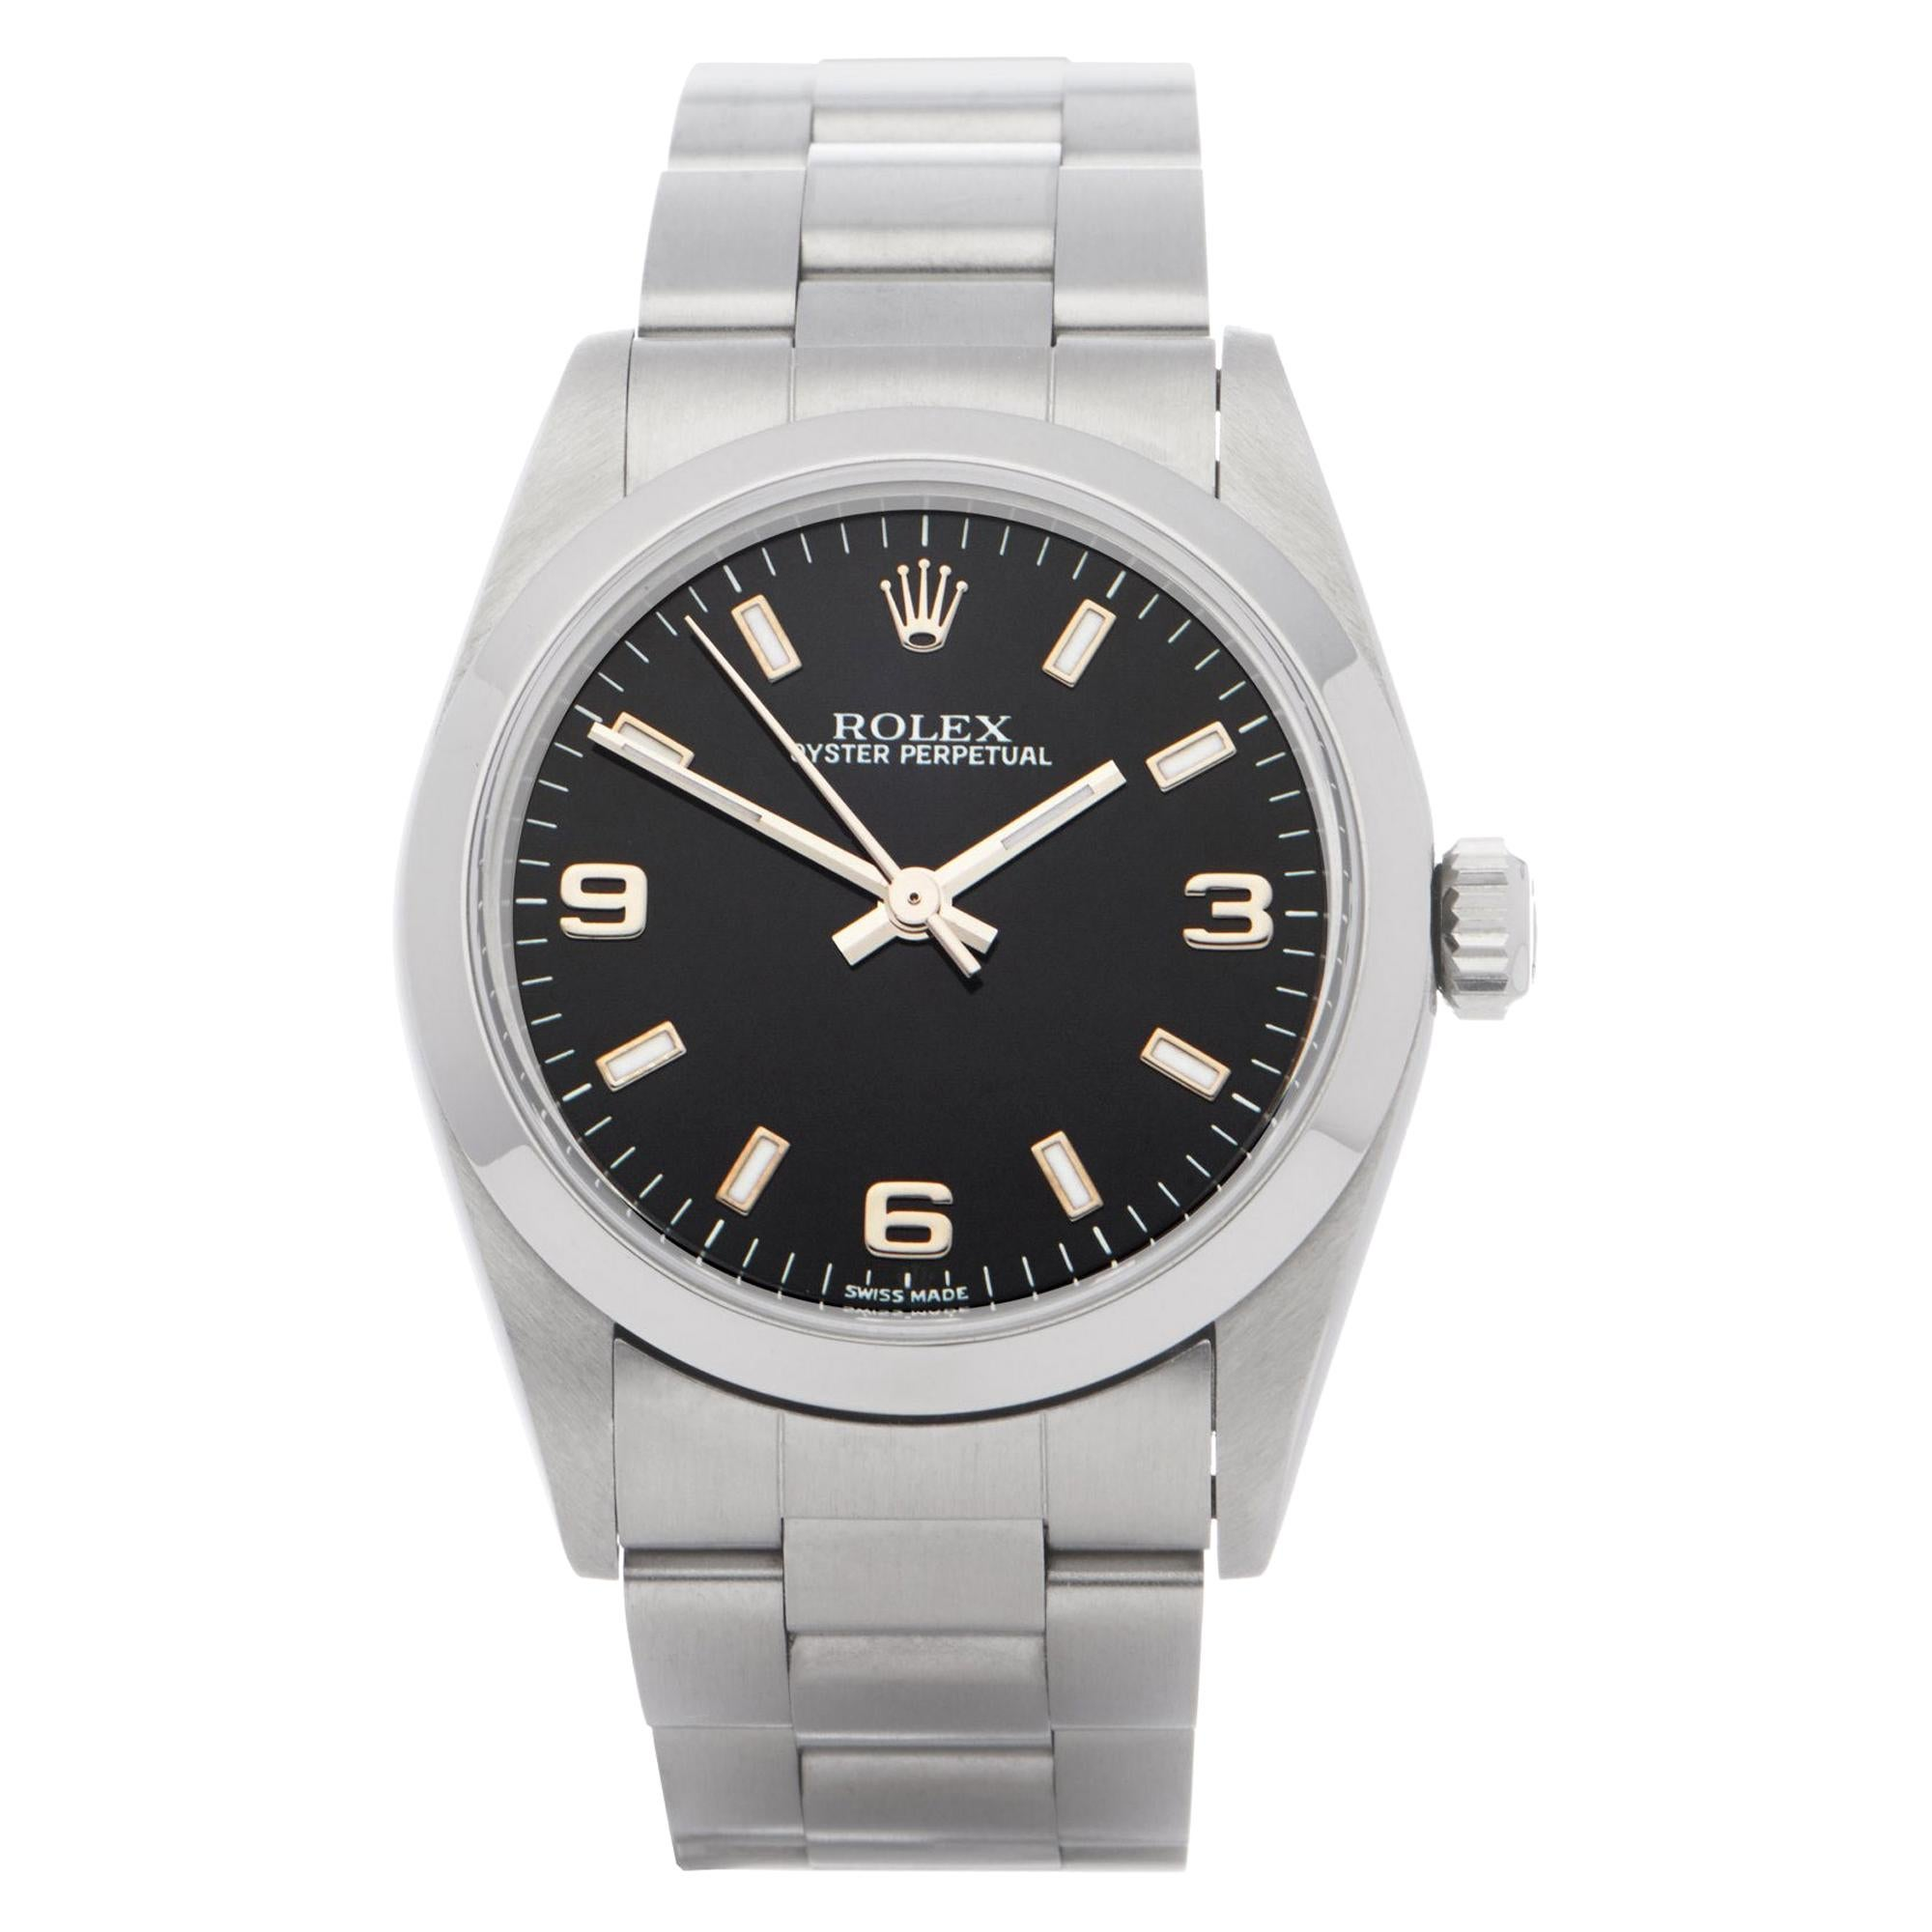 Rolex Oyster Perpetual 0 77080 Ladies Stainless Steel 0 Watch